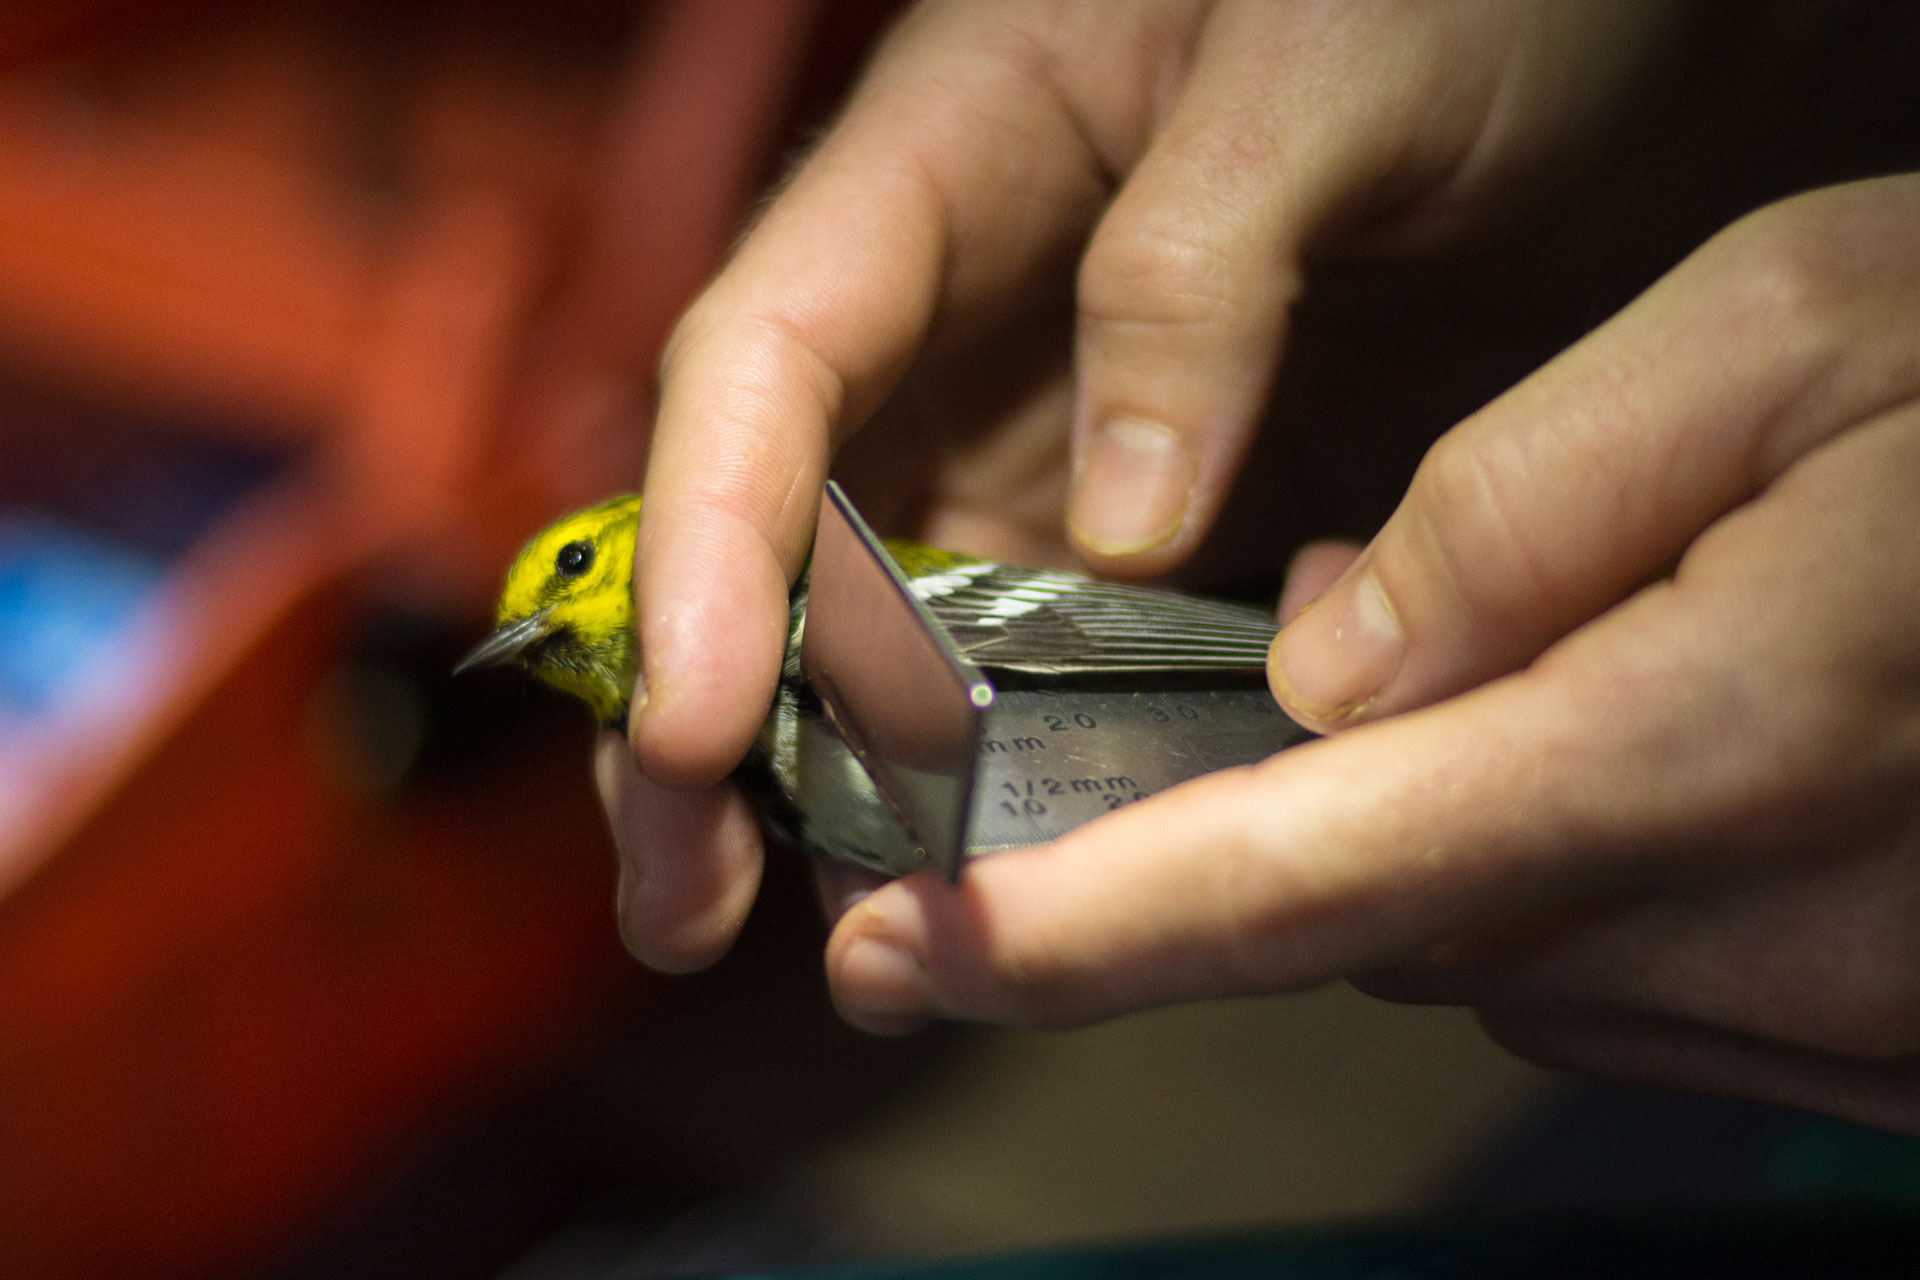 Wing length is measured on a Black-throated Green Warbler during Tremont's 2020 community science bird banding season